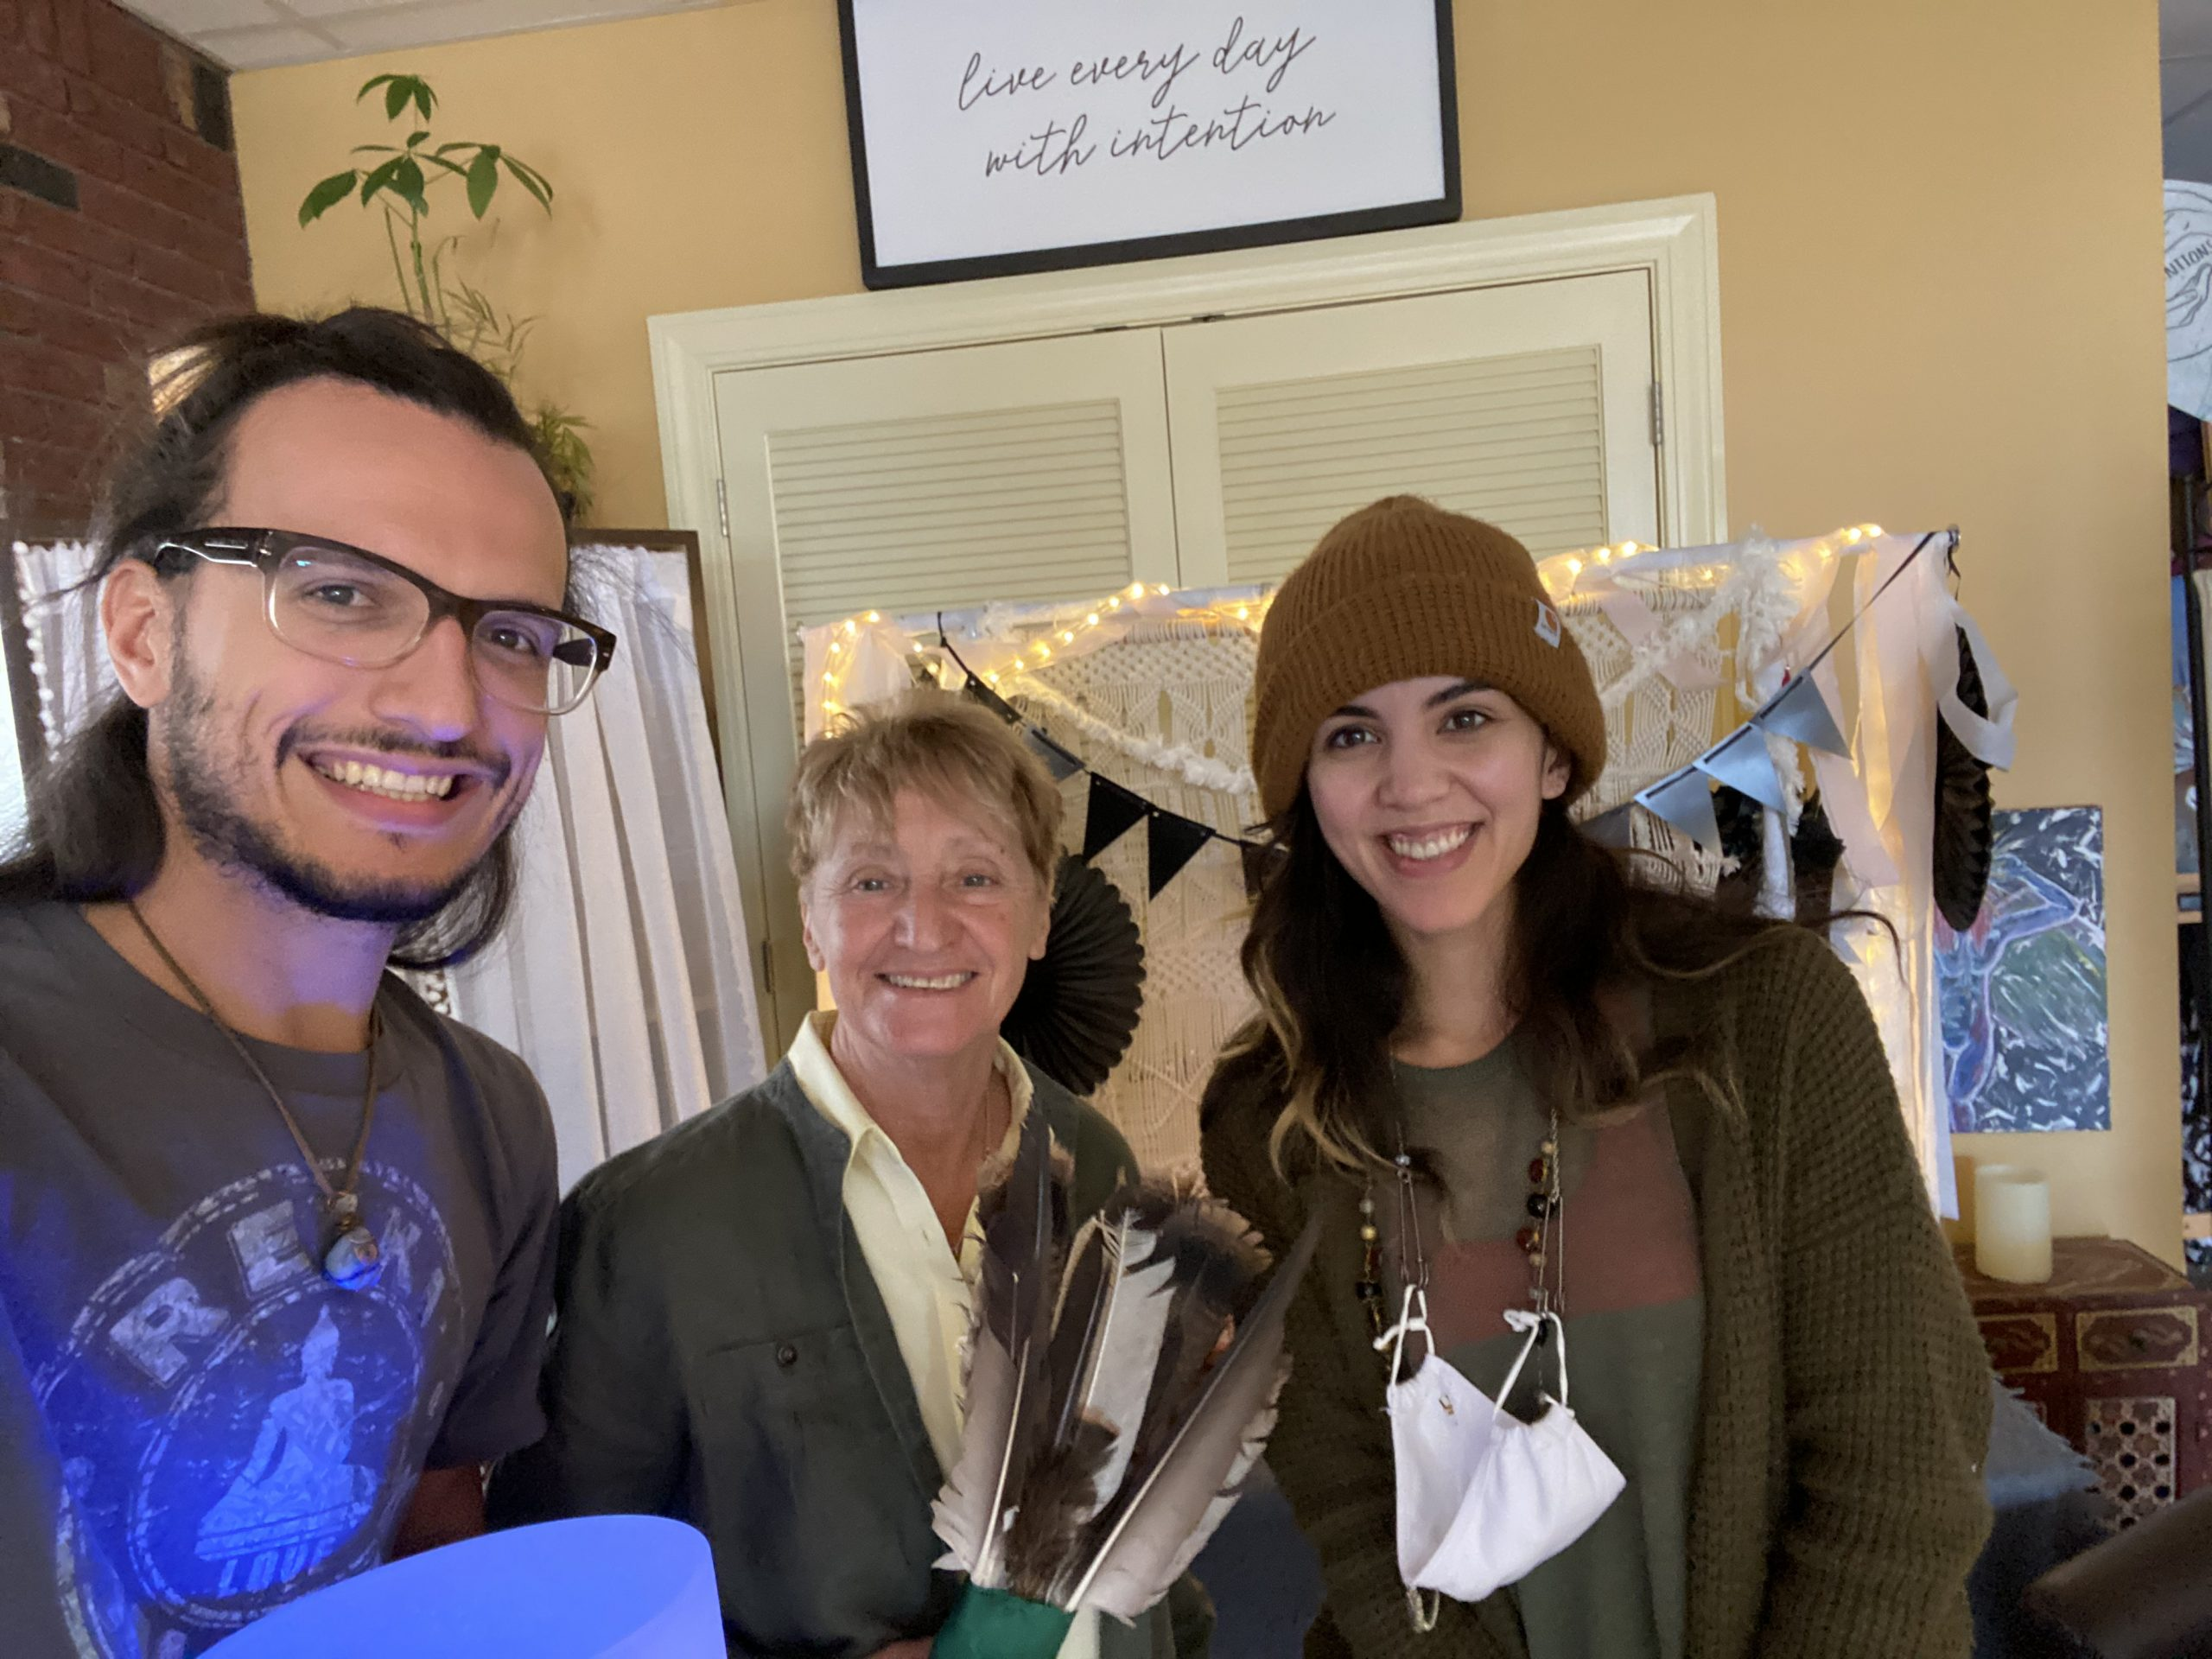 Clearing with Ellie Campolei at With Intentions Holistic Studio in Lake Como, NJ